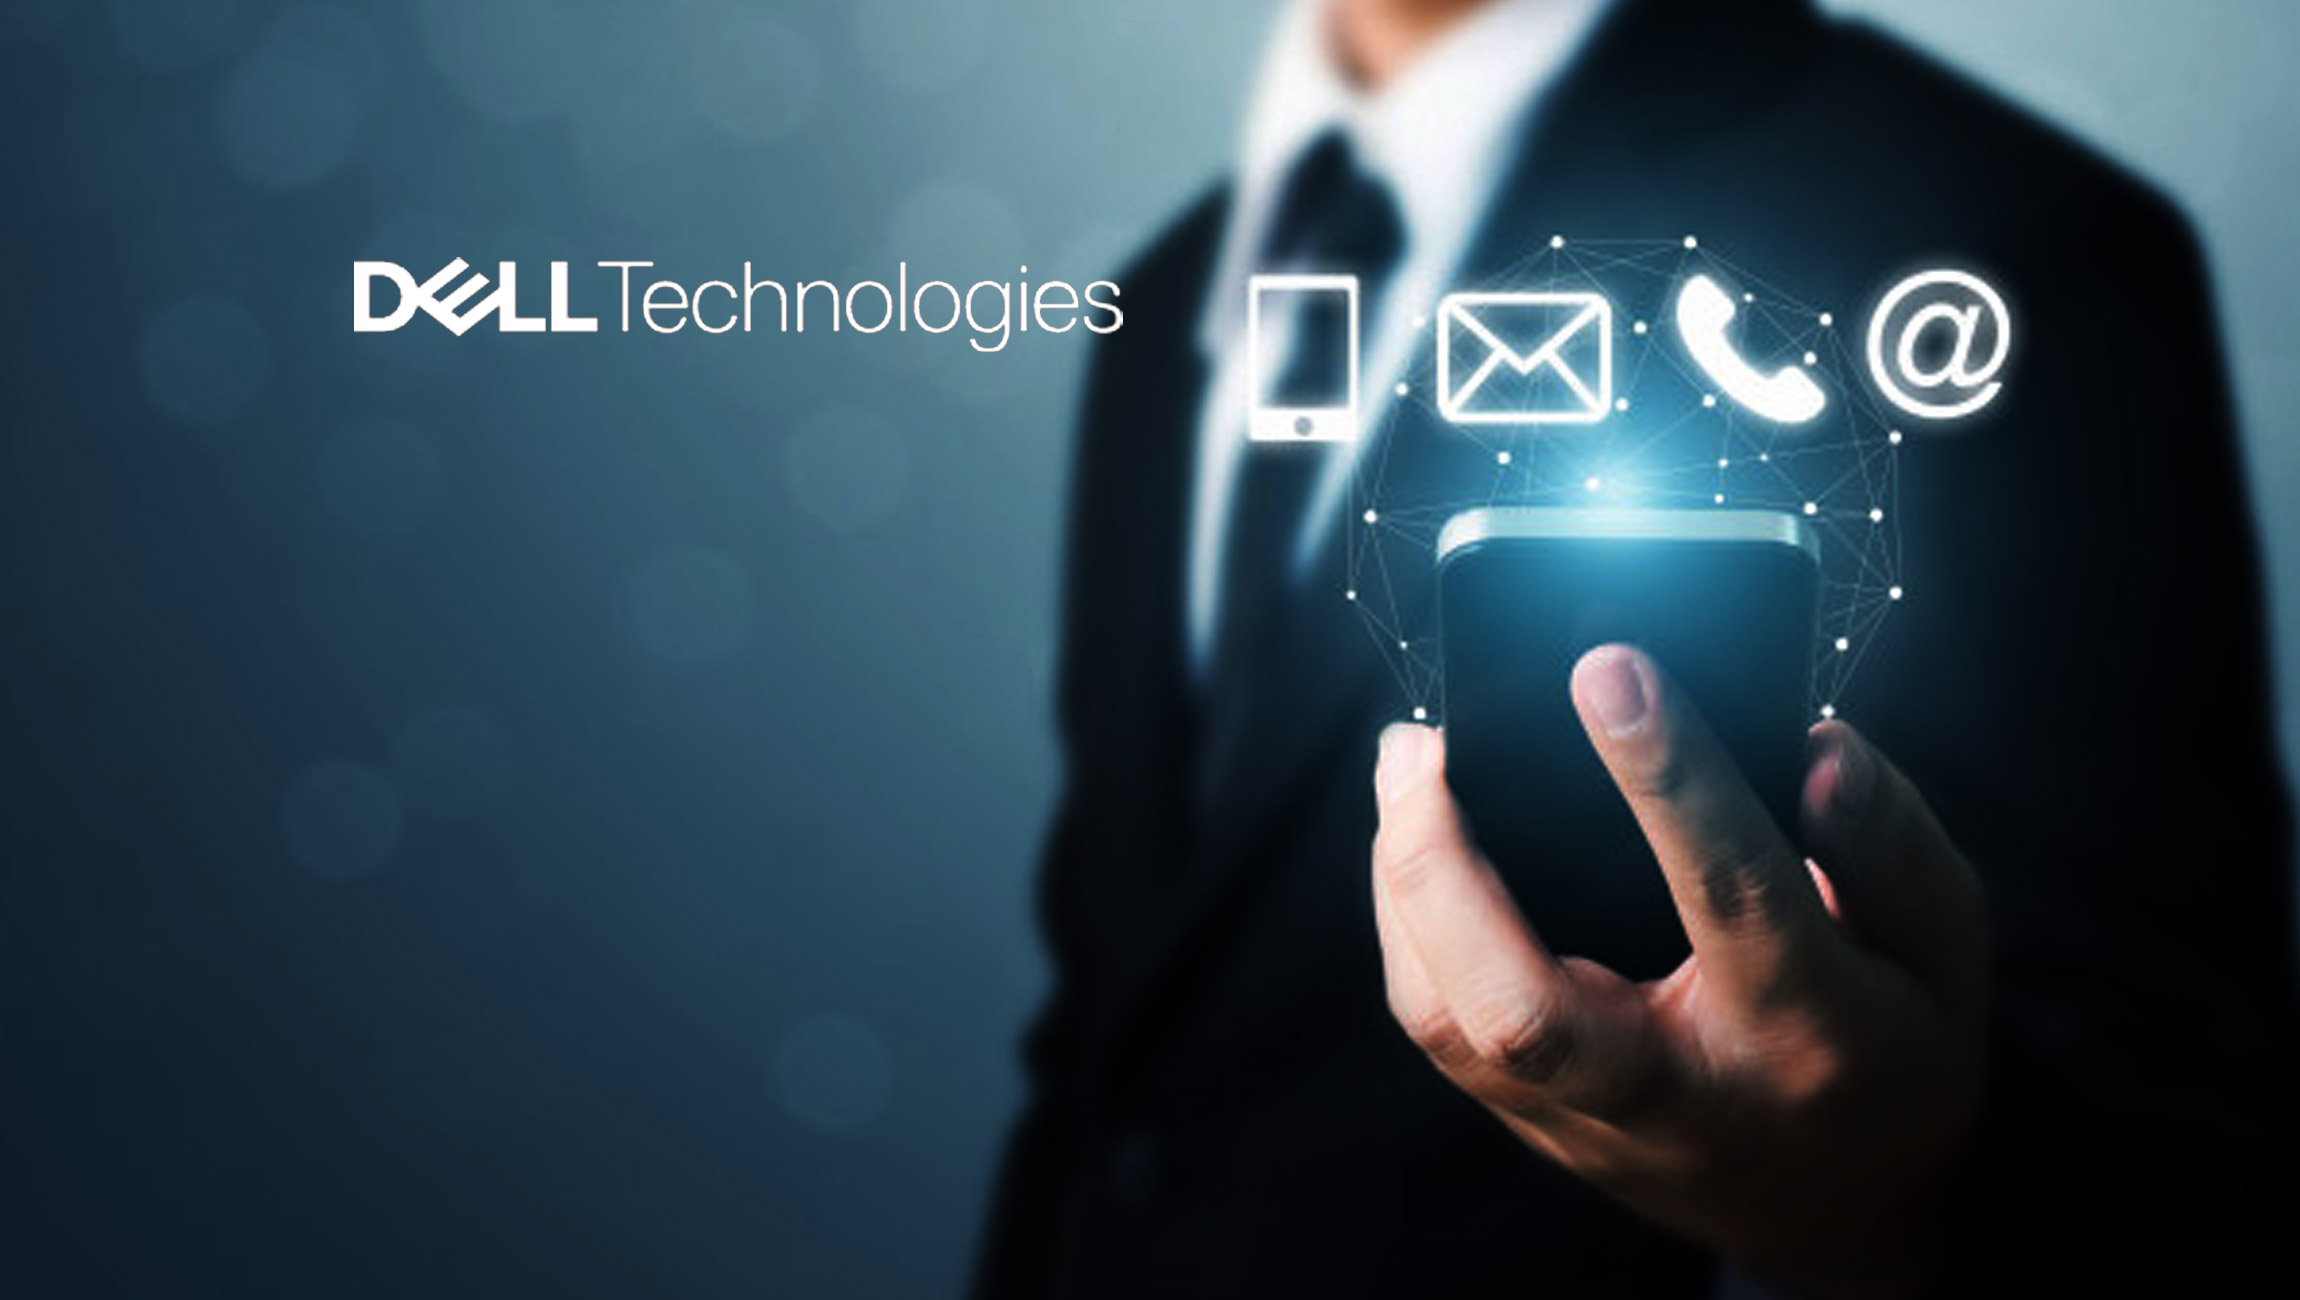 Dell Technologies Helps Communications Service Providers Transform to Capture Opportunities at the Edge